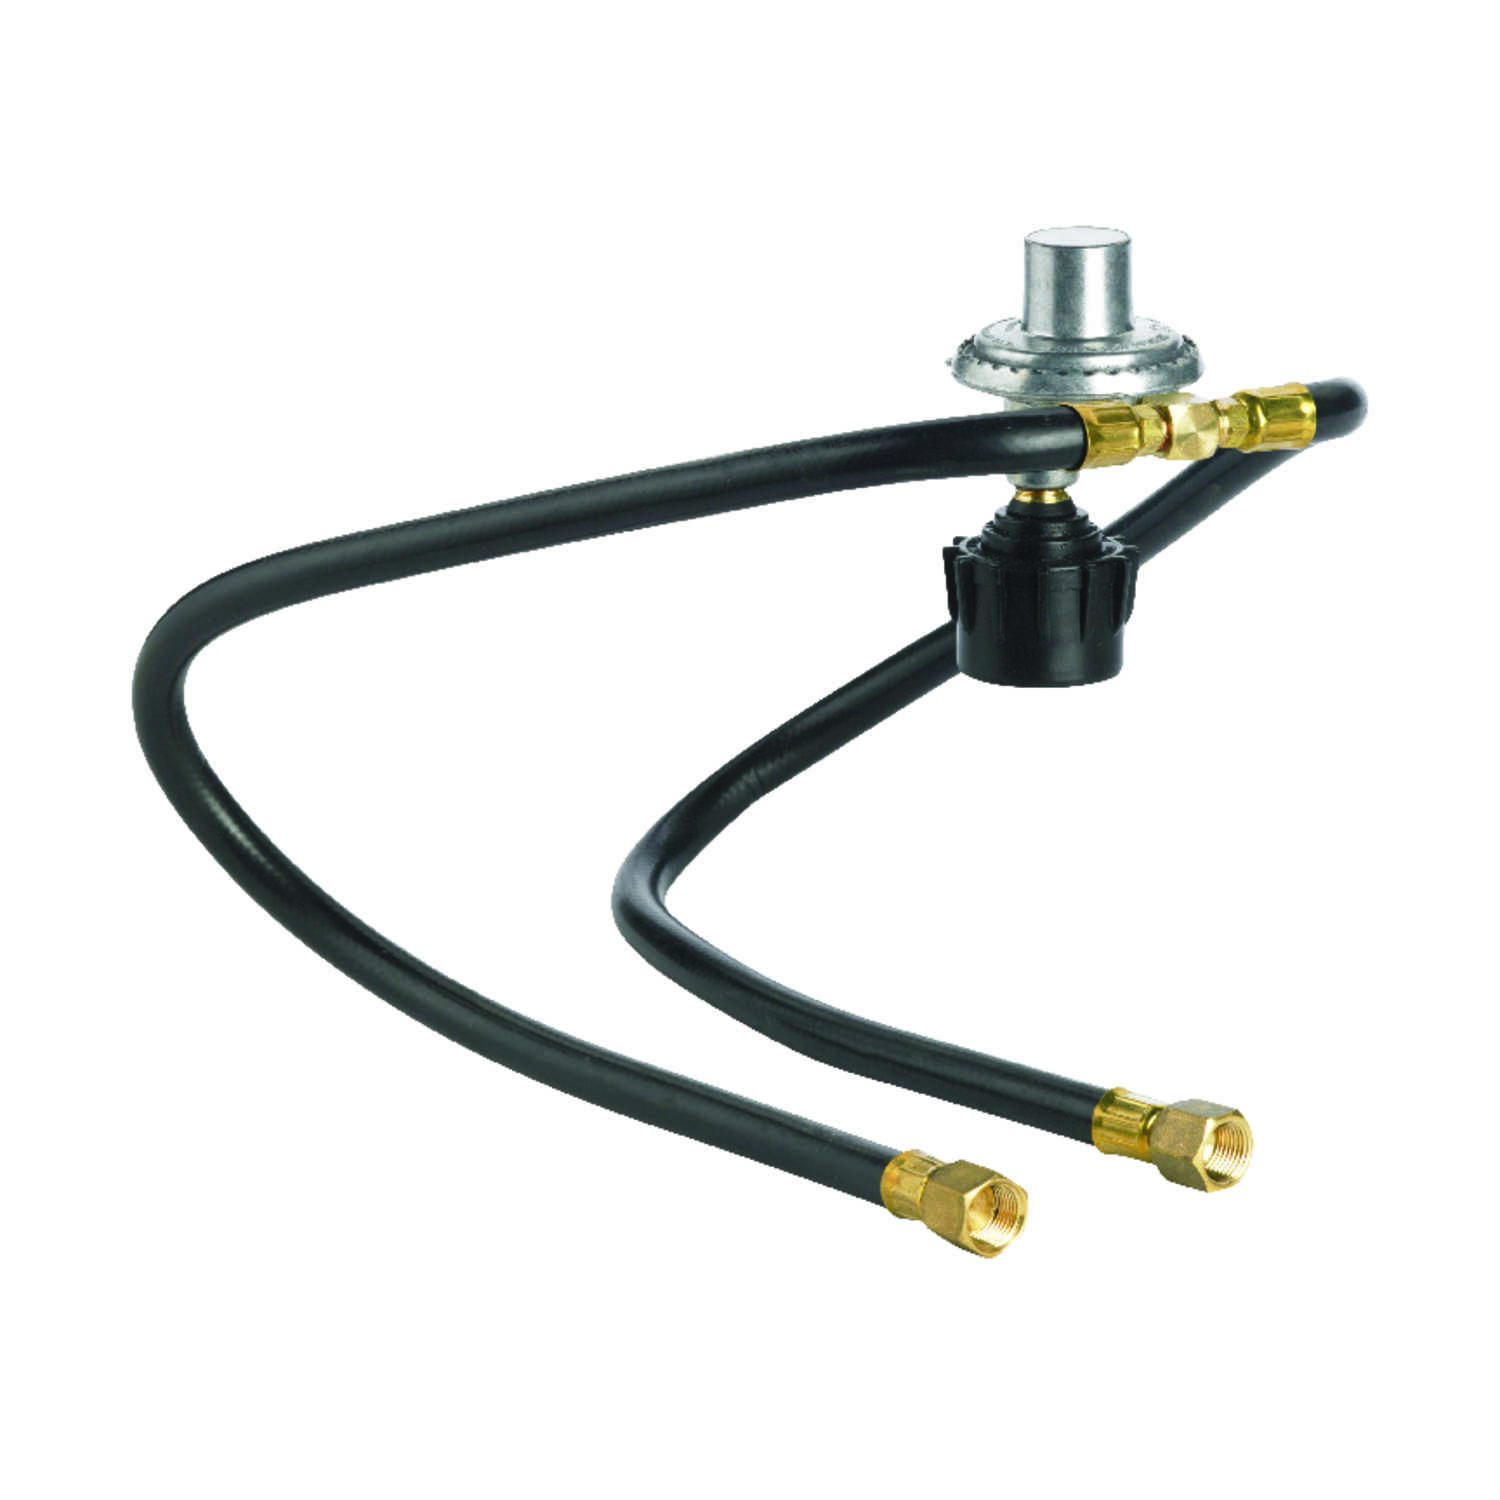 Grillmark  Stainless Steel/Rubber/Brass  Gas Line Hose and Regulator  3 in. H x 3 in. W x 21 in. L